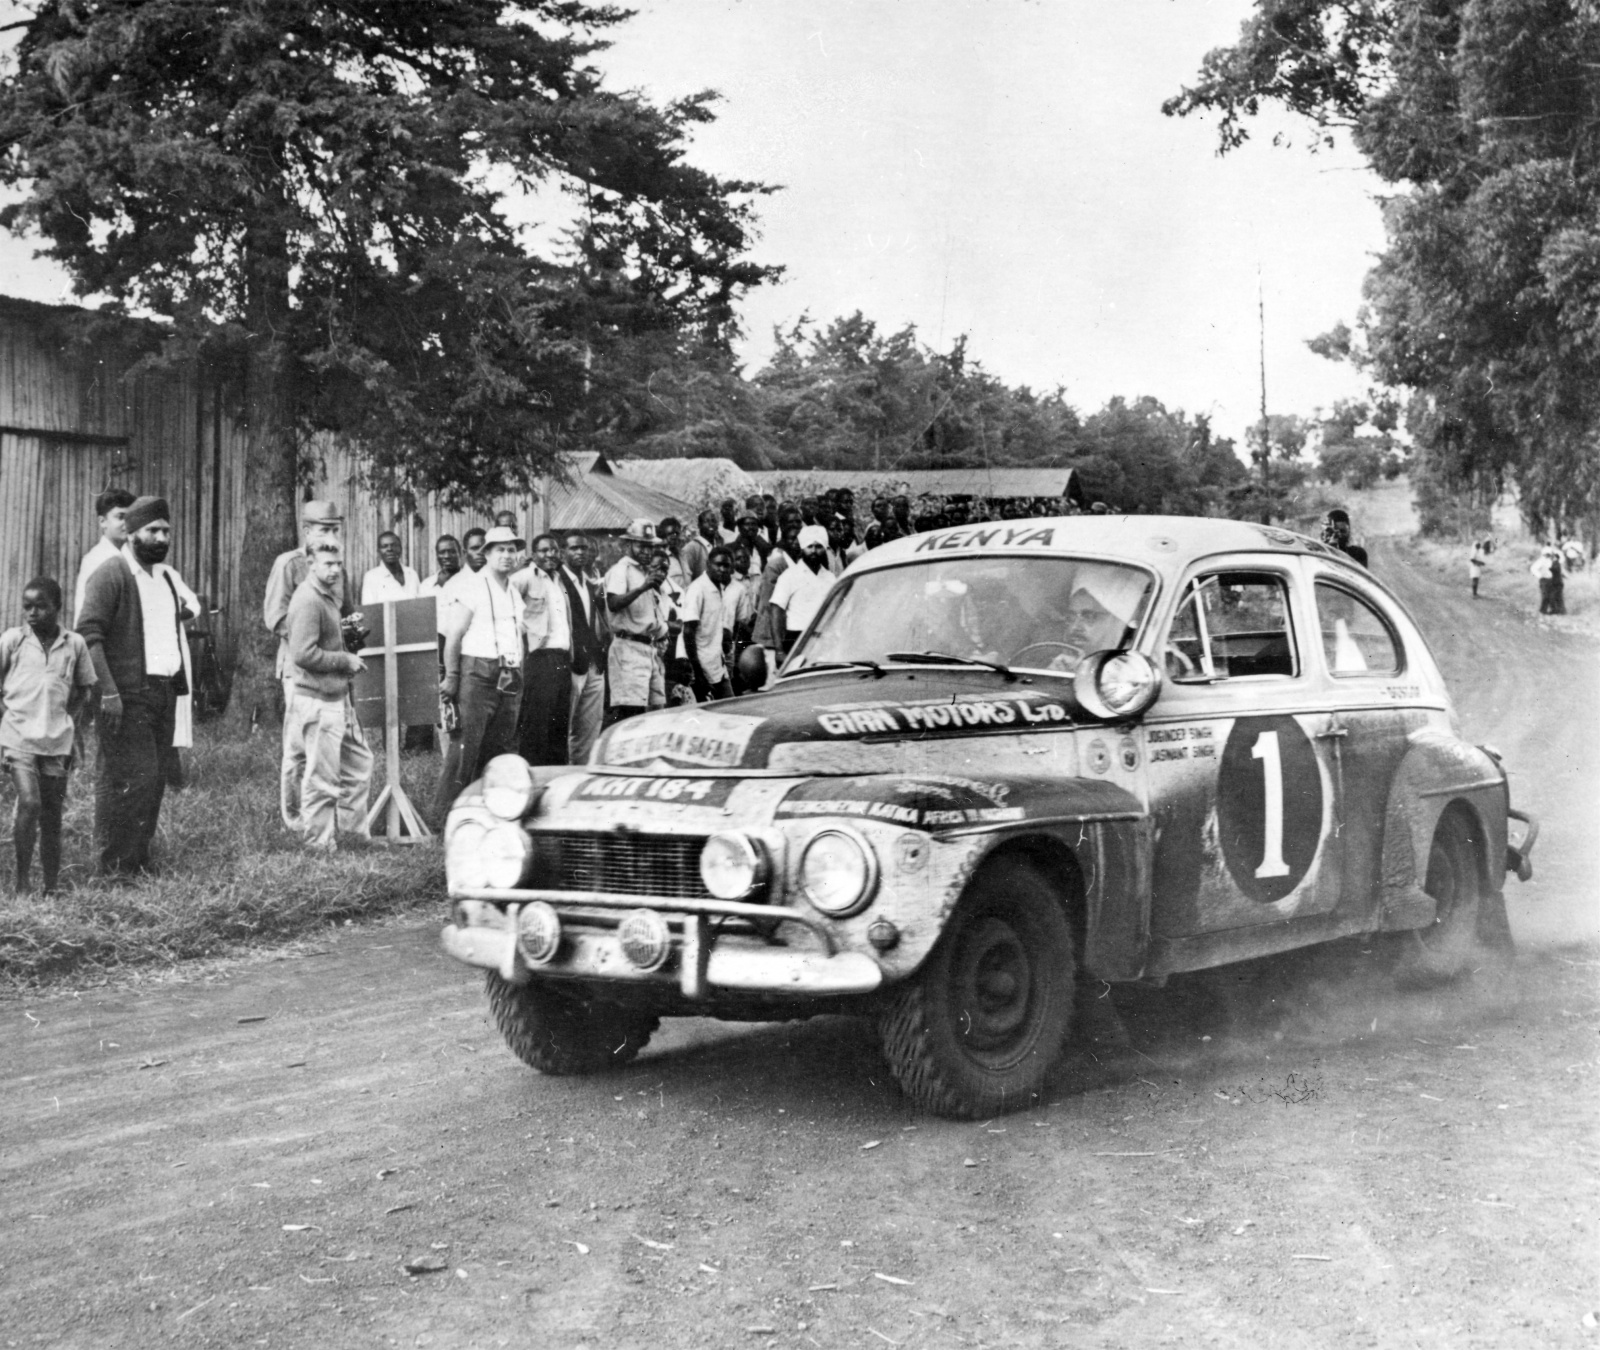 Volvo Katterug wint Safari Rally – in 1965